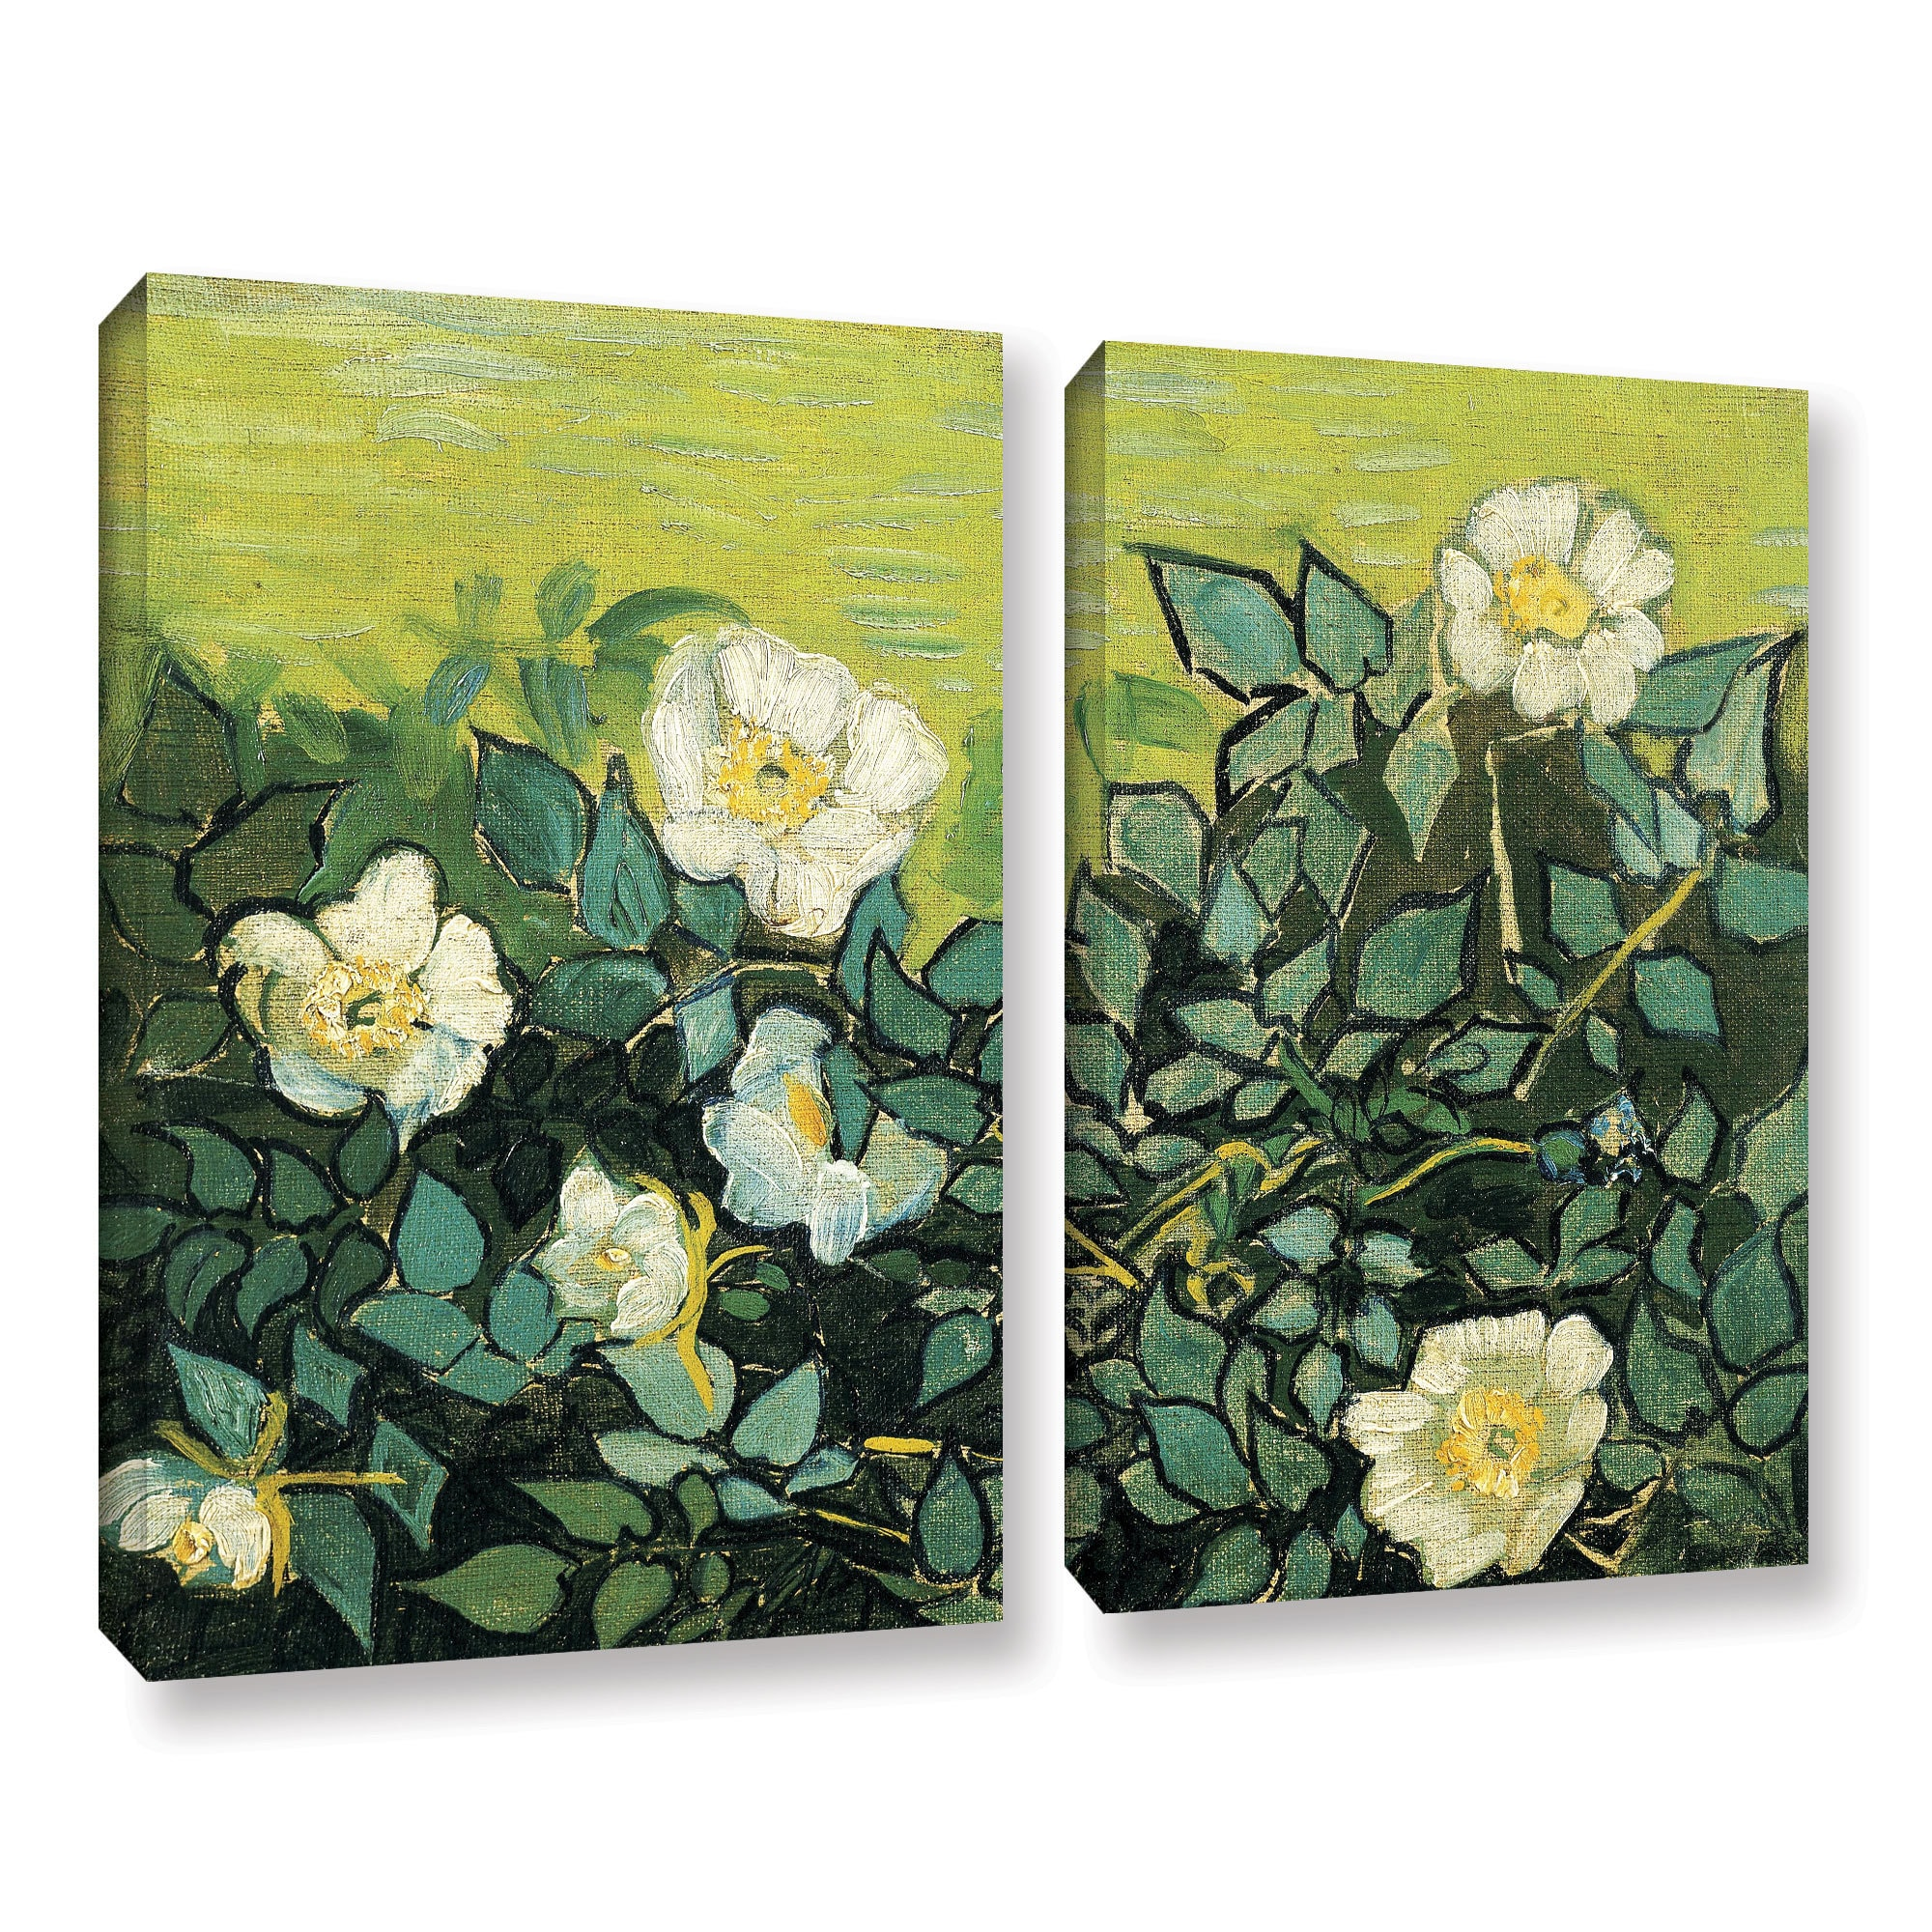 ArtWall Vincent Vangoghs Wild Roses 4 Piece Gallery-Wrapped Canvas Set 36X48